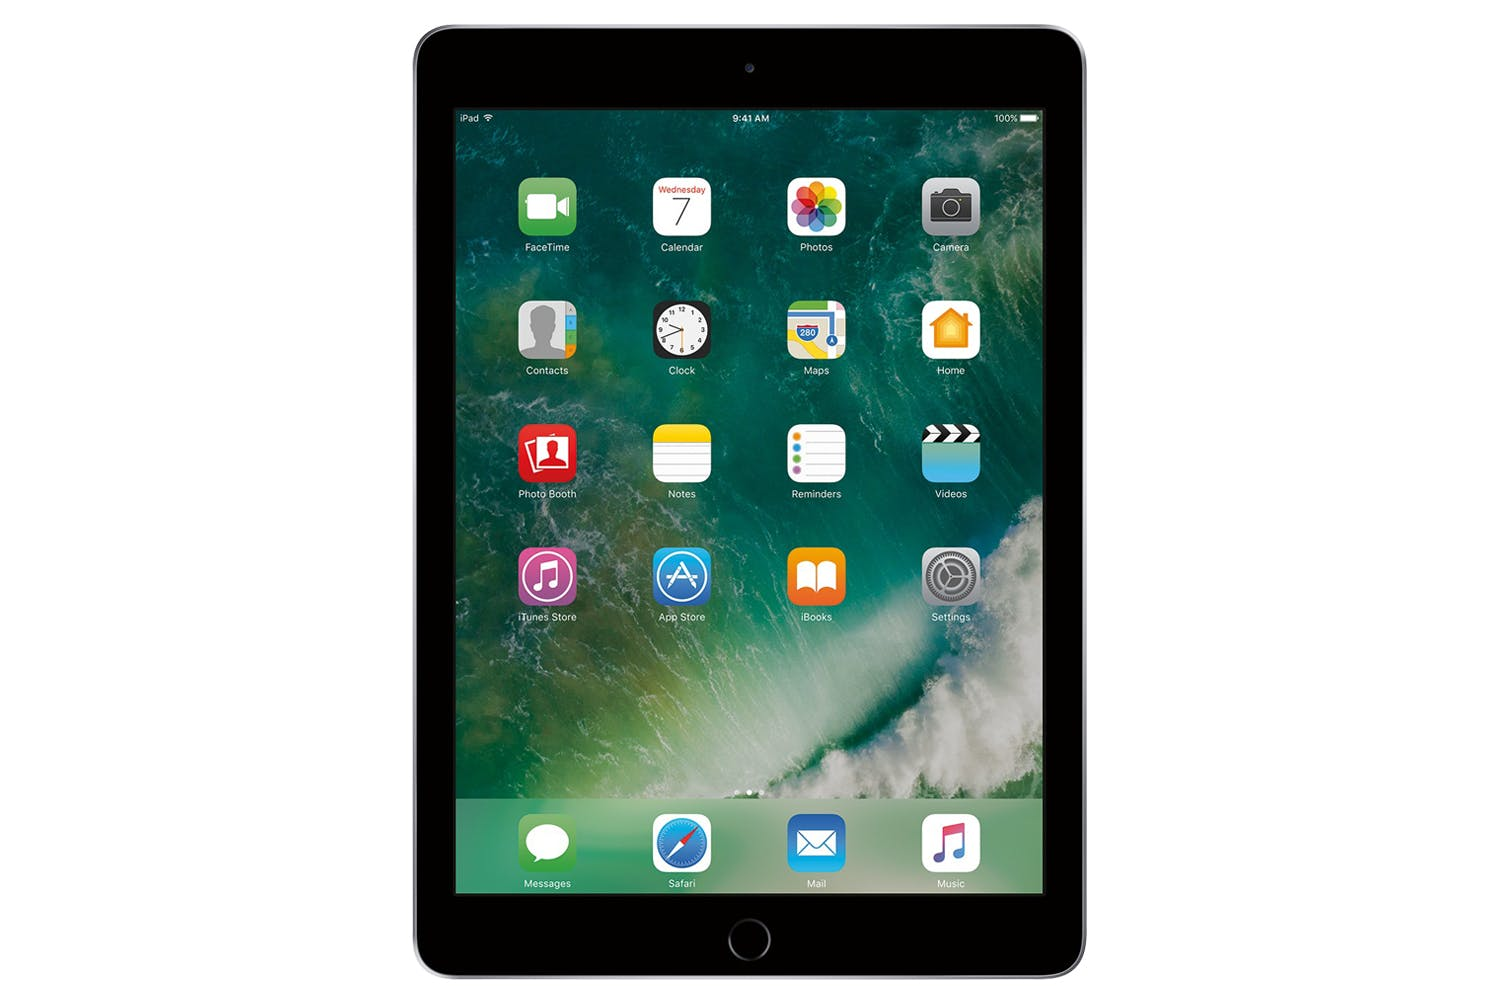 Ipad 6 Apple 128GB Tela 9.7 Space Gray Cinza IOS 11 Model A1893 Wi-ffi